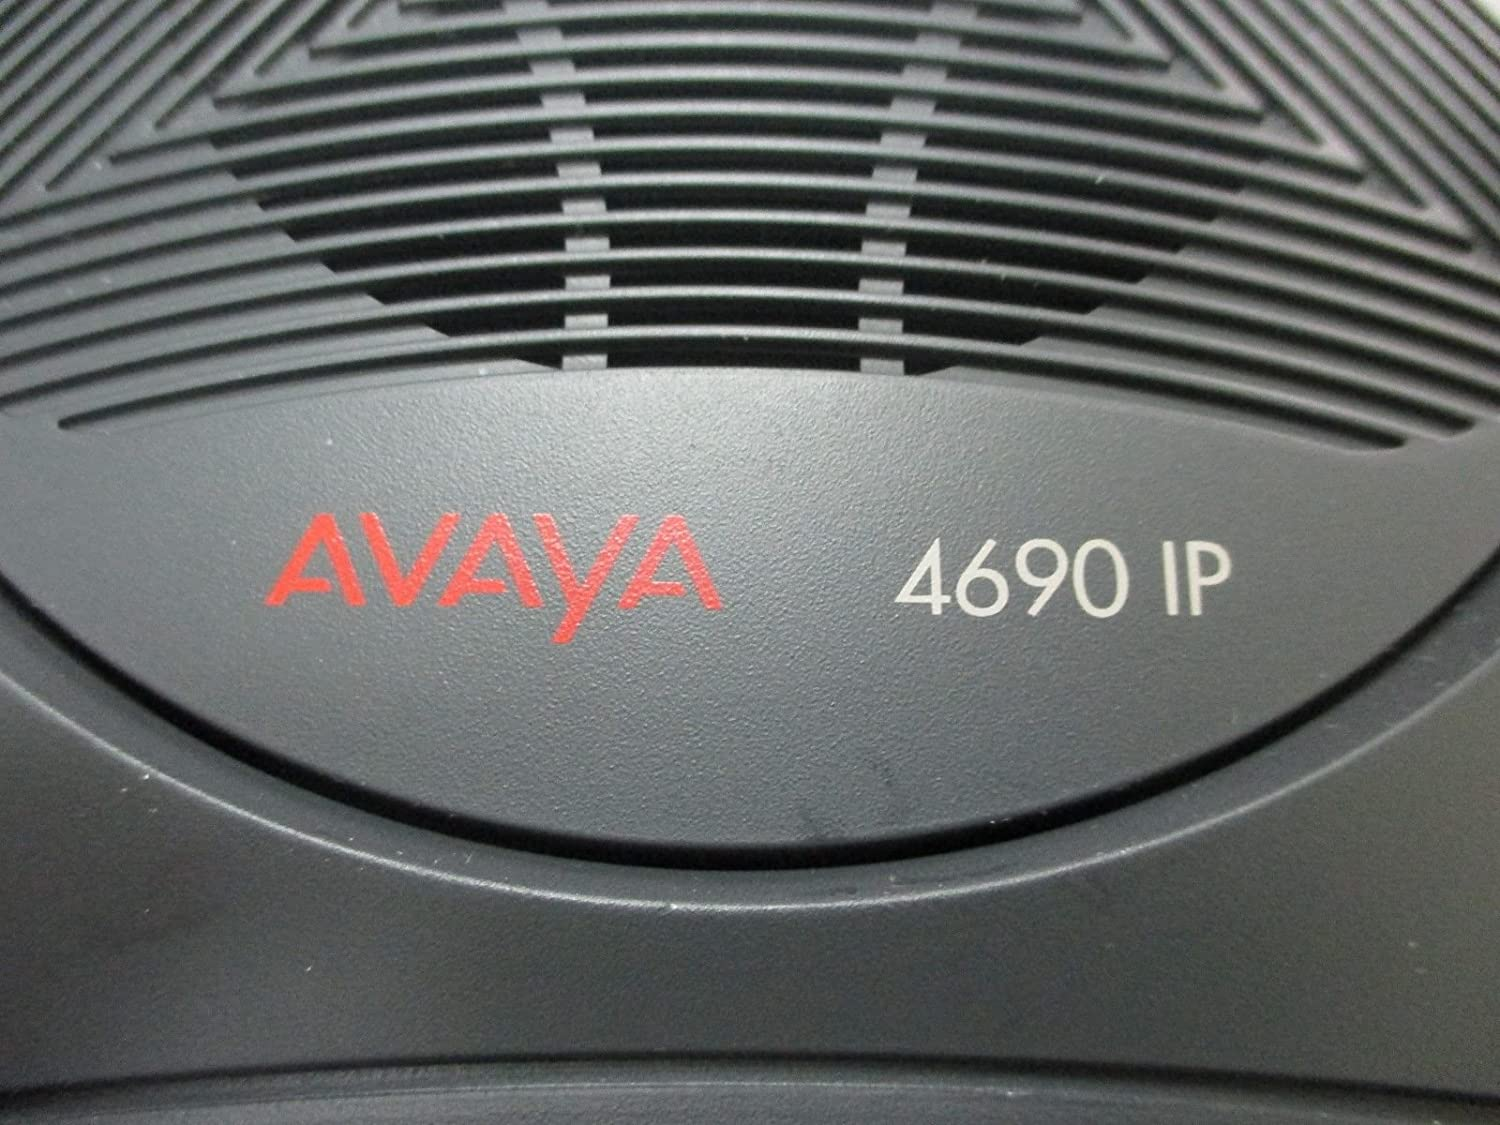 Avaya Polycom 4690 IP 2301-06682-001 Conference Telephone ONLY - NO POE POWER - - Amazon.com